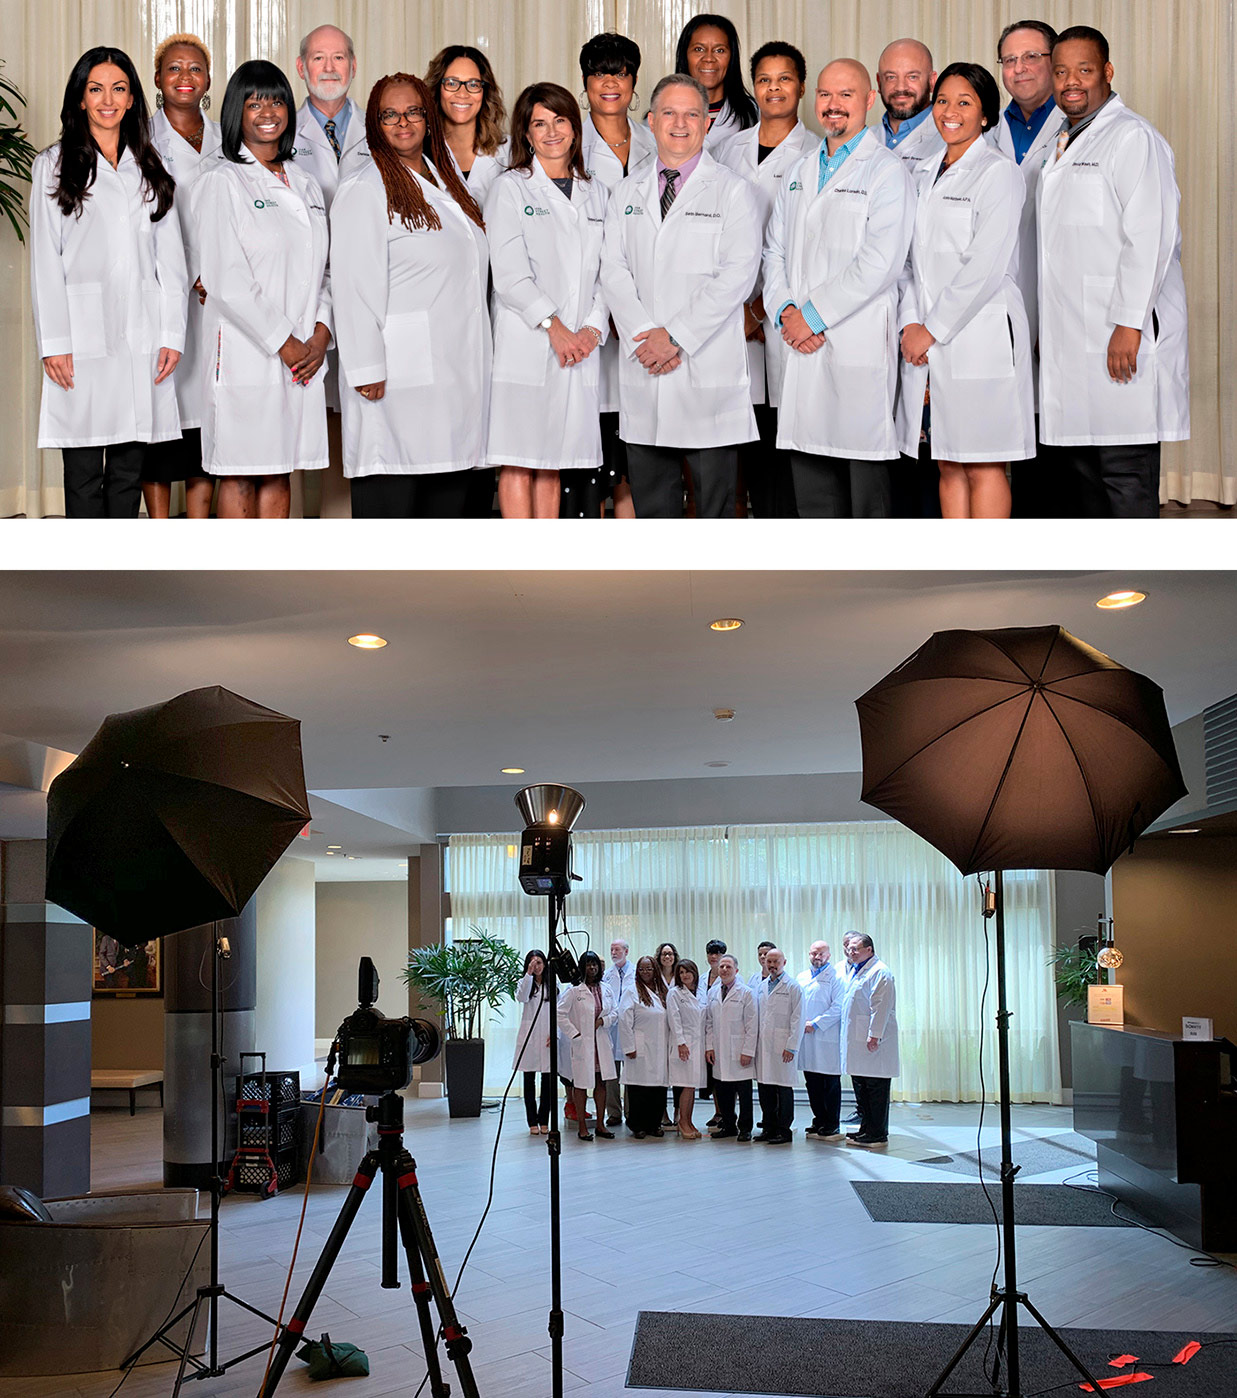 health care group photography business teams